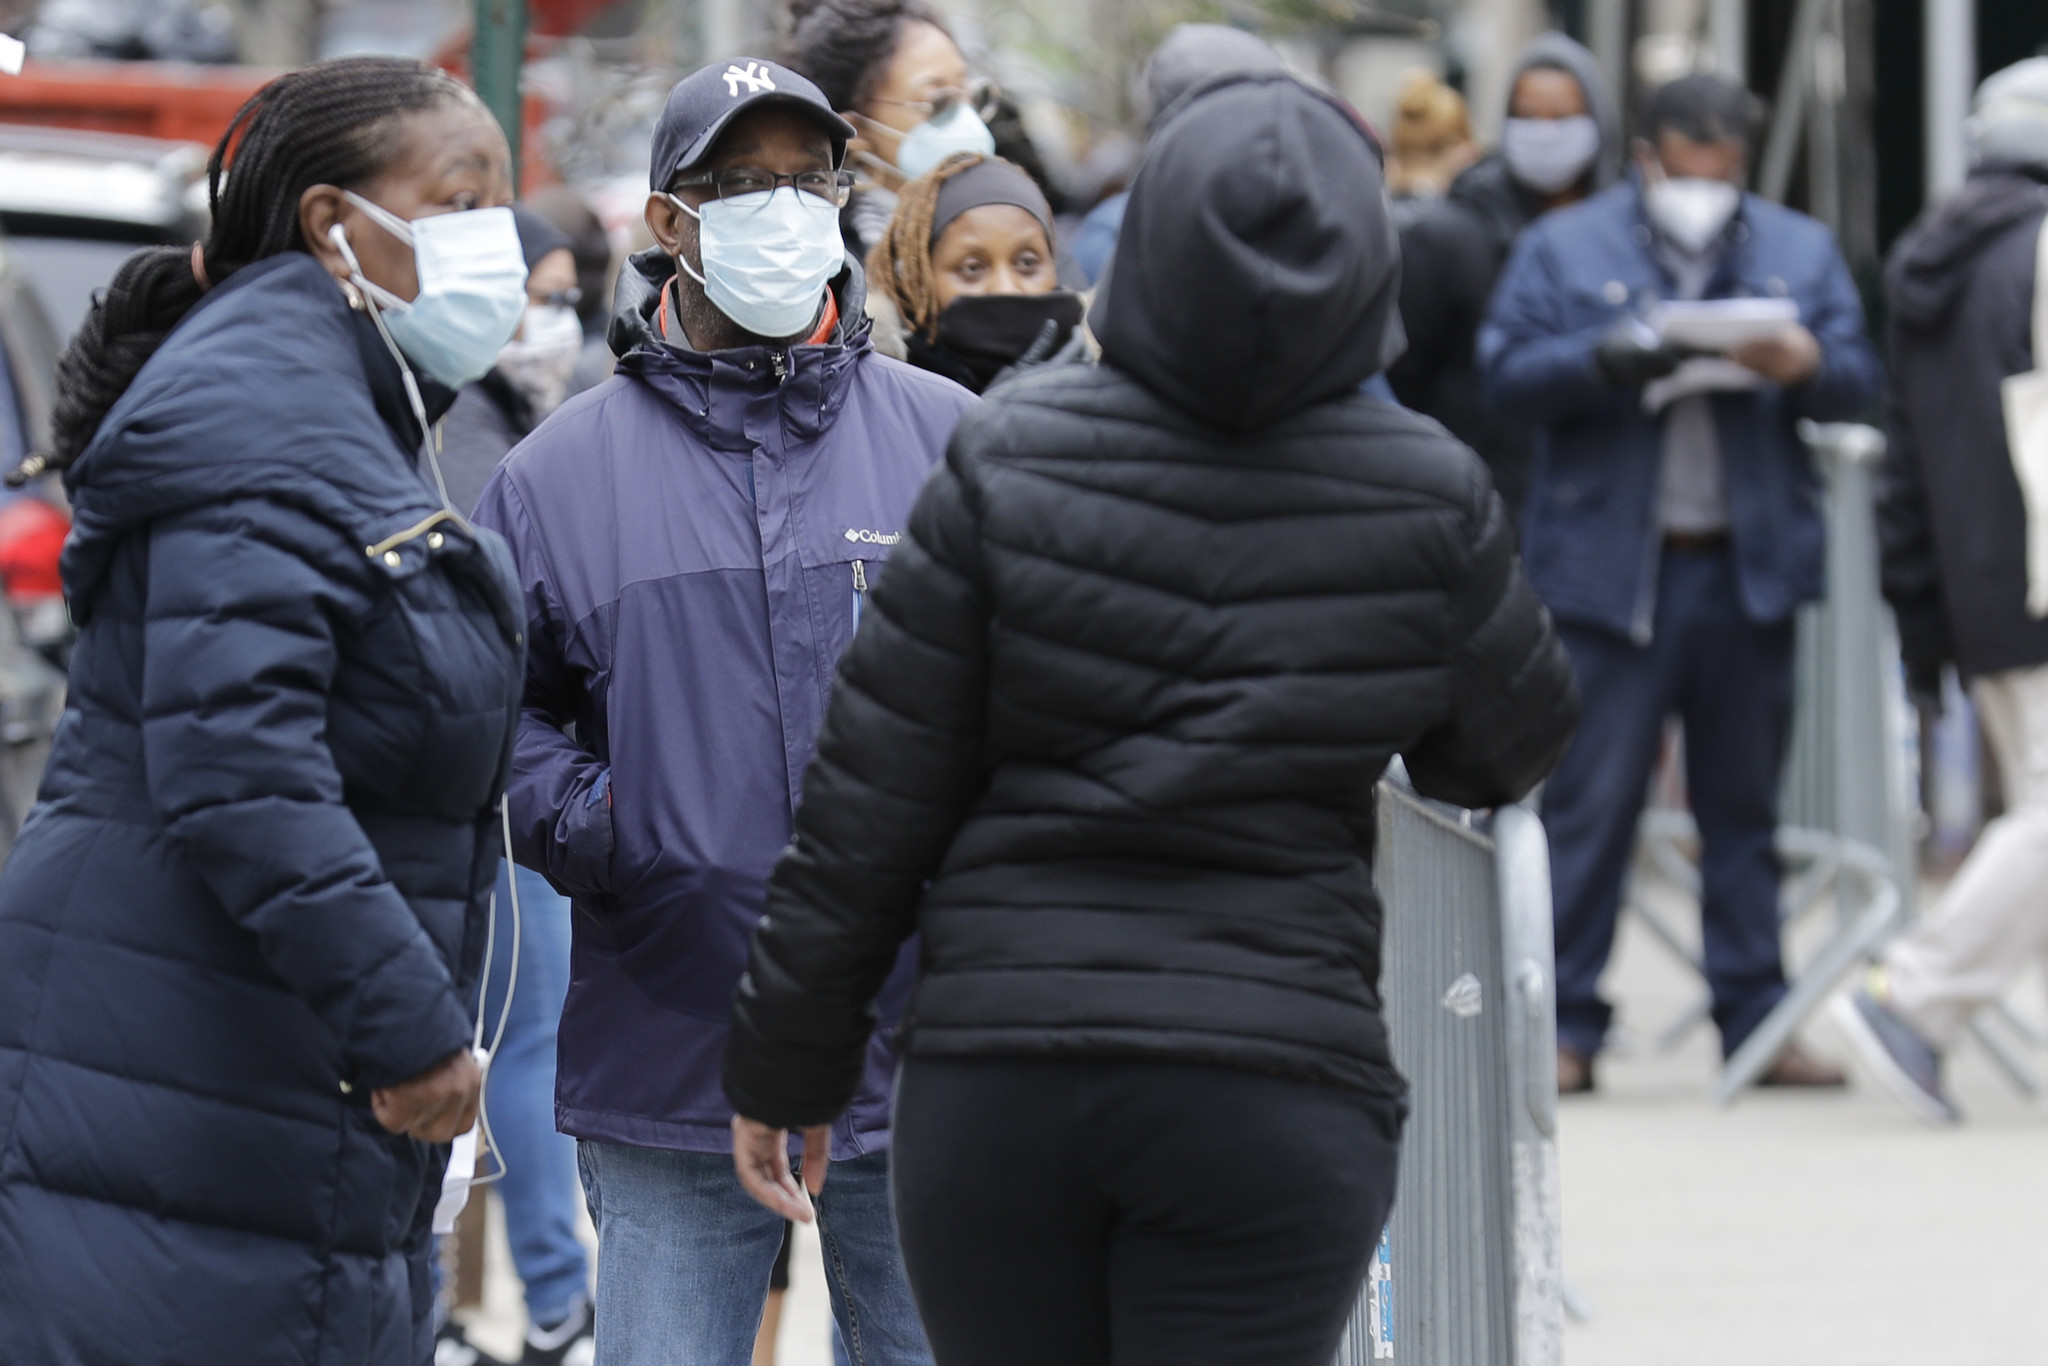 NYC should fund independent study of racial disparity in coronavirus deaths, says Black Institute